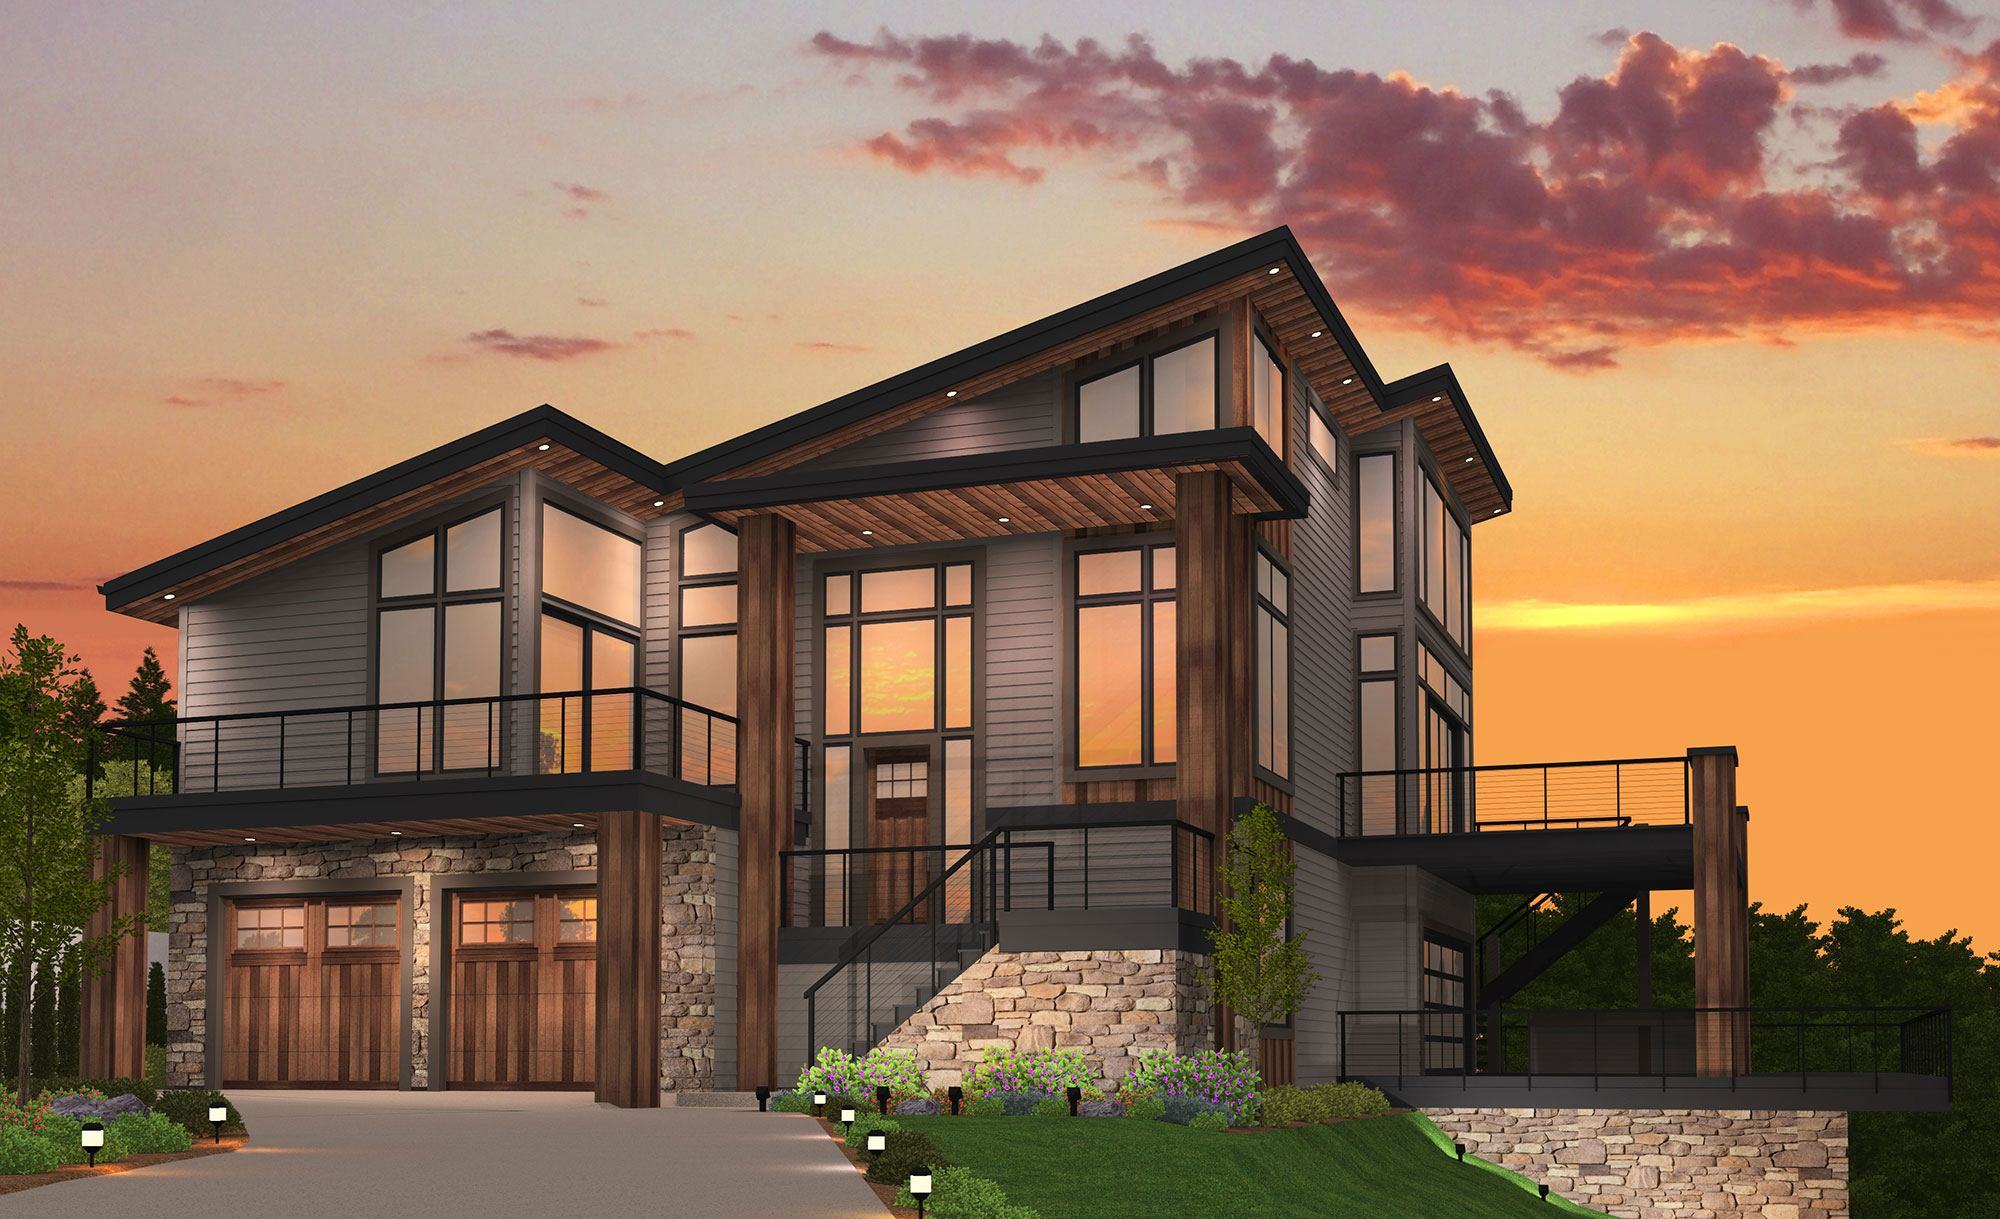 Ultra Modern House Plans For Wide Shallow Steep Lots - rts - ^